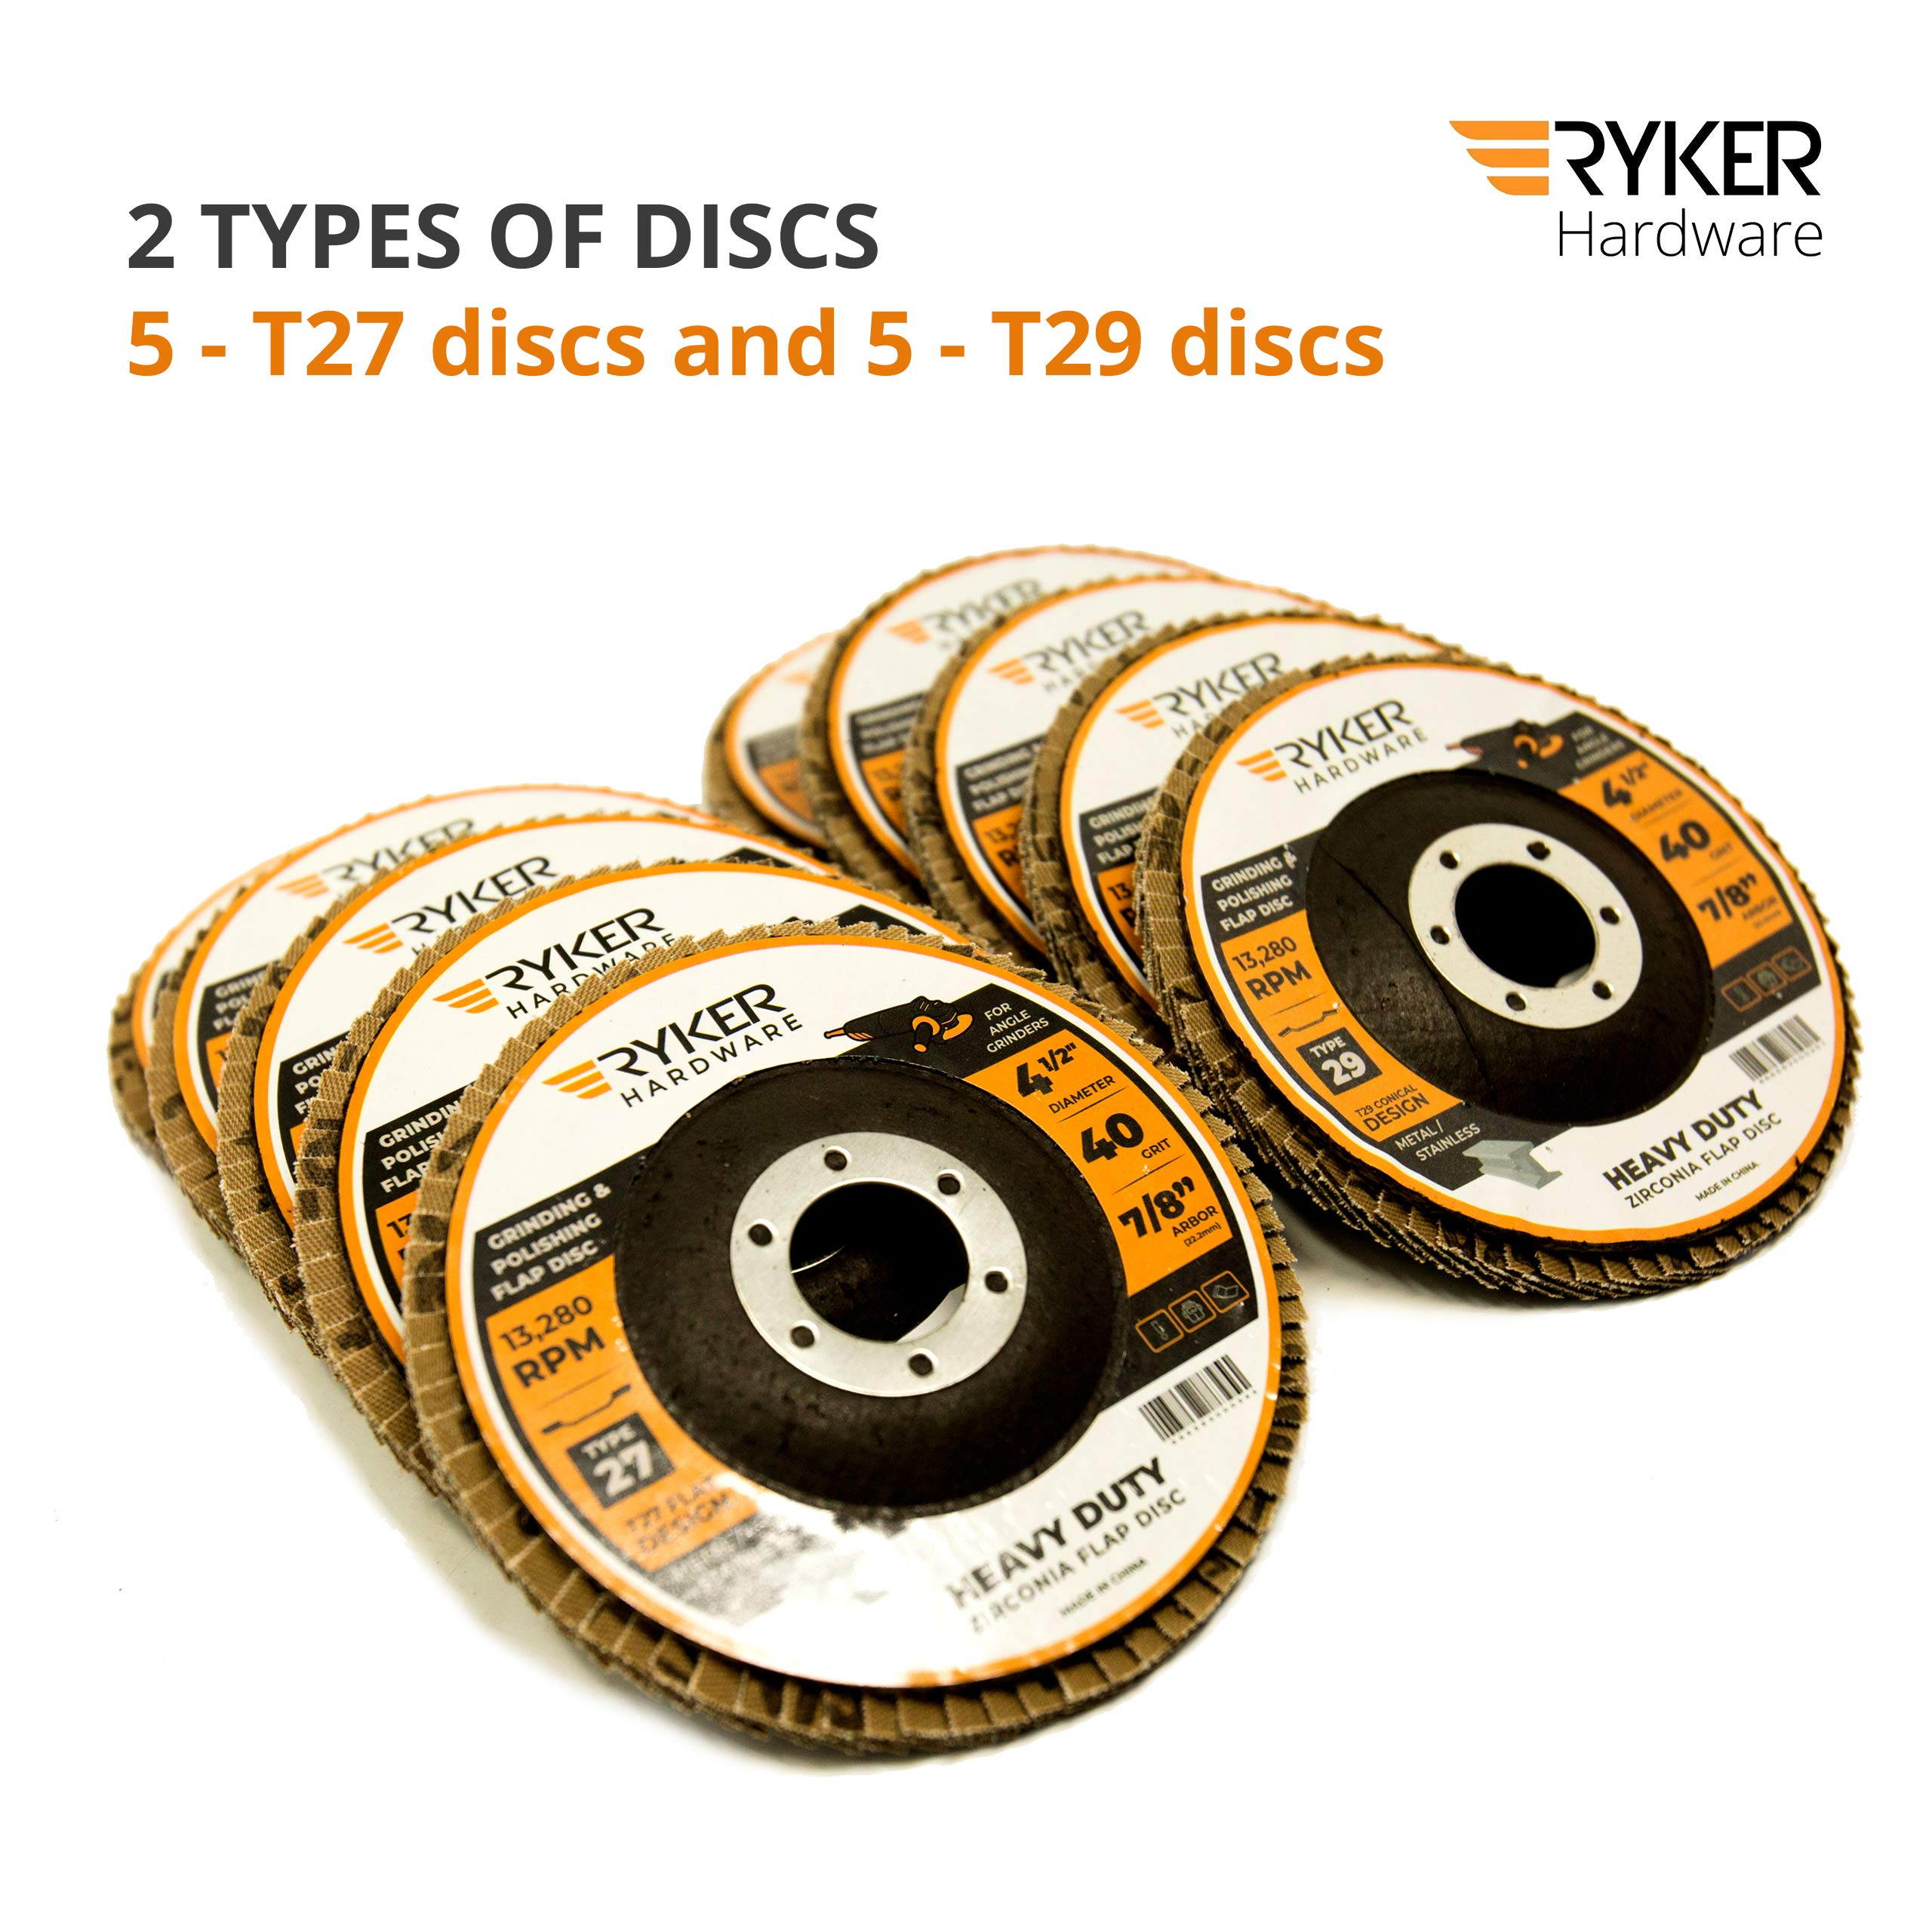 Ryker Hardware Premium Zirconia 40-Grit Flap Disc (10 Pack) 4.5 Inch x 7/8 Inch Abrasive Grinding Wheels | Type 27 and Type 29-5 of Each Grinder Disc